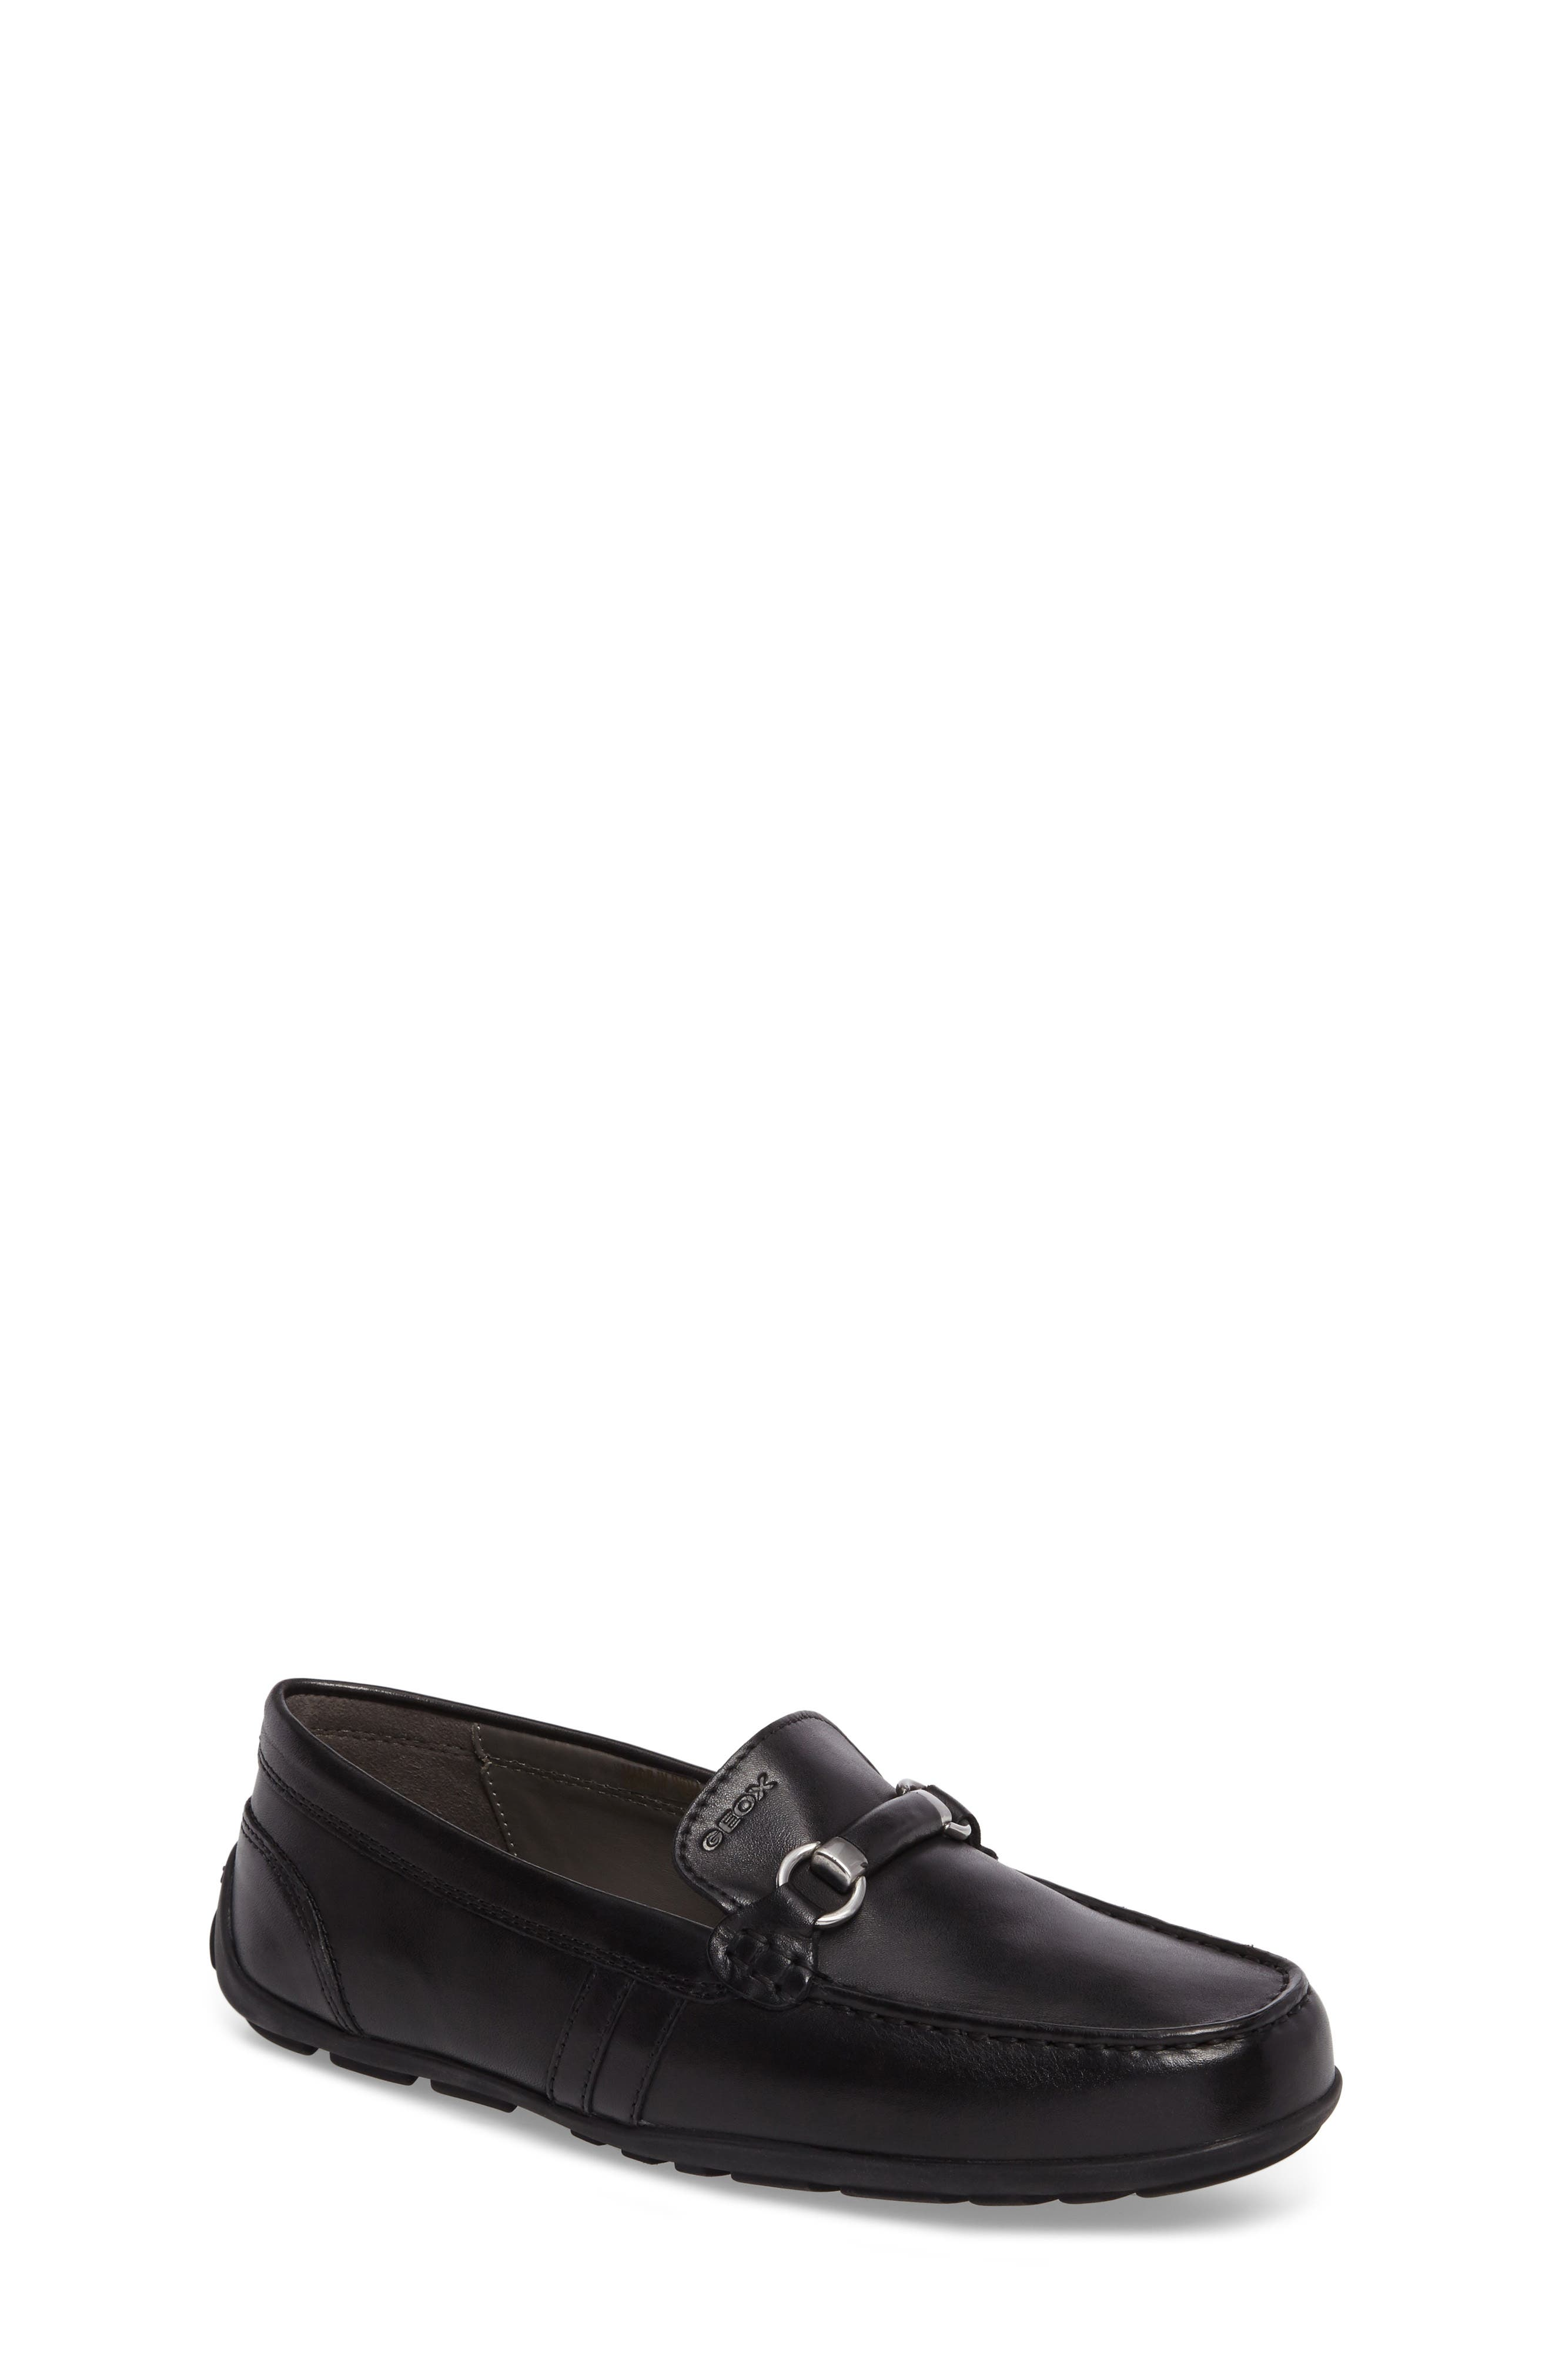 Alternate Image 1 Selected - Geox 'Fast 16' Bit Loafer (Toddler, Little Kid & Big Kid)